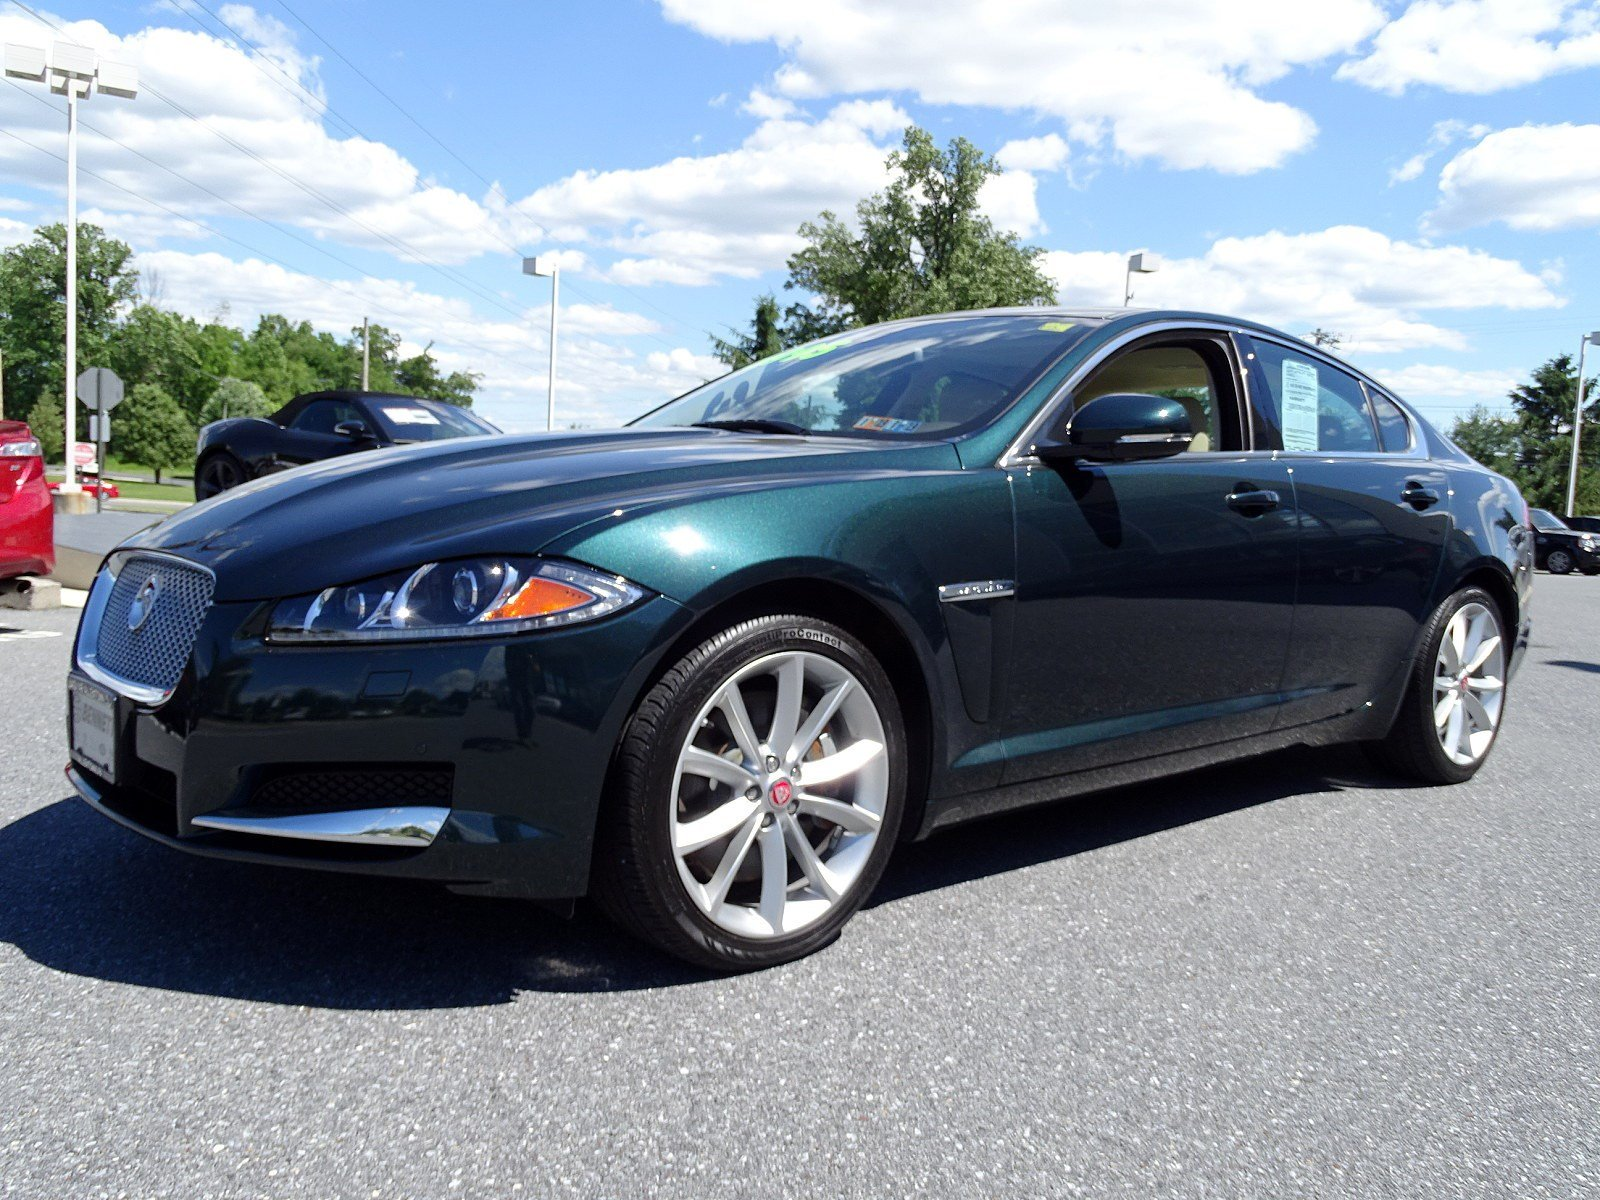 pre used sedan cincinnati xf in door sport awd inventory jaguar owned